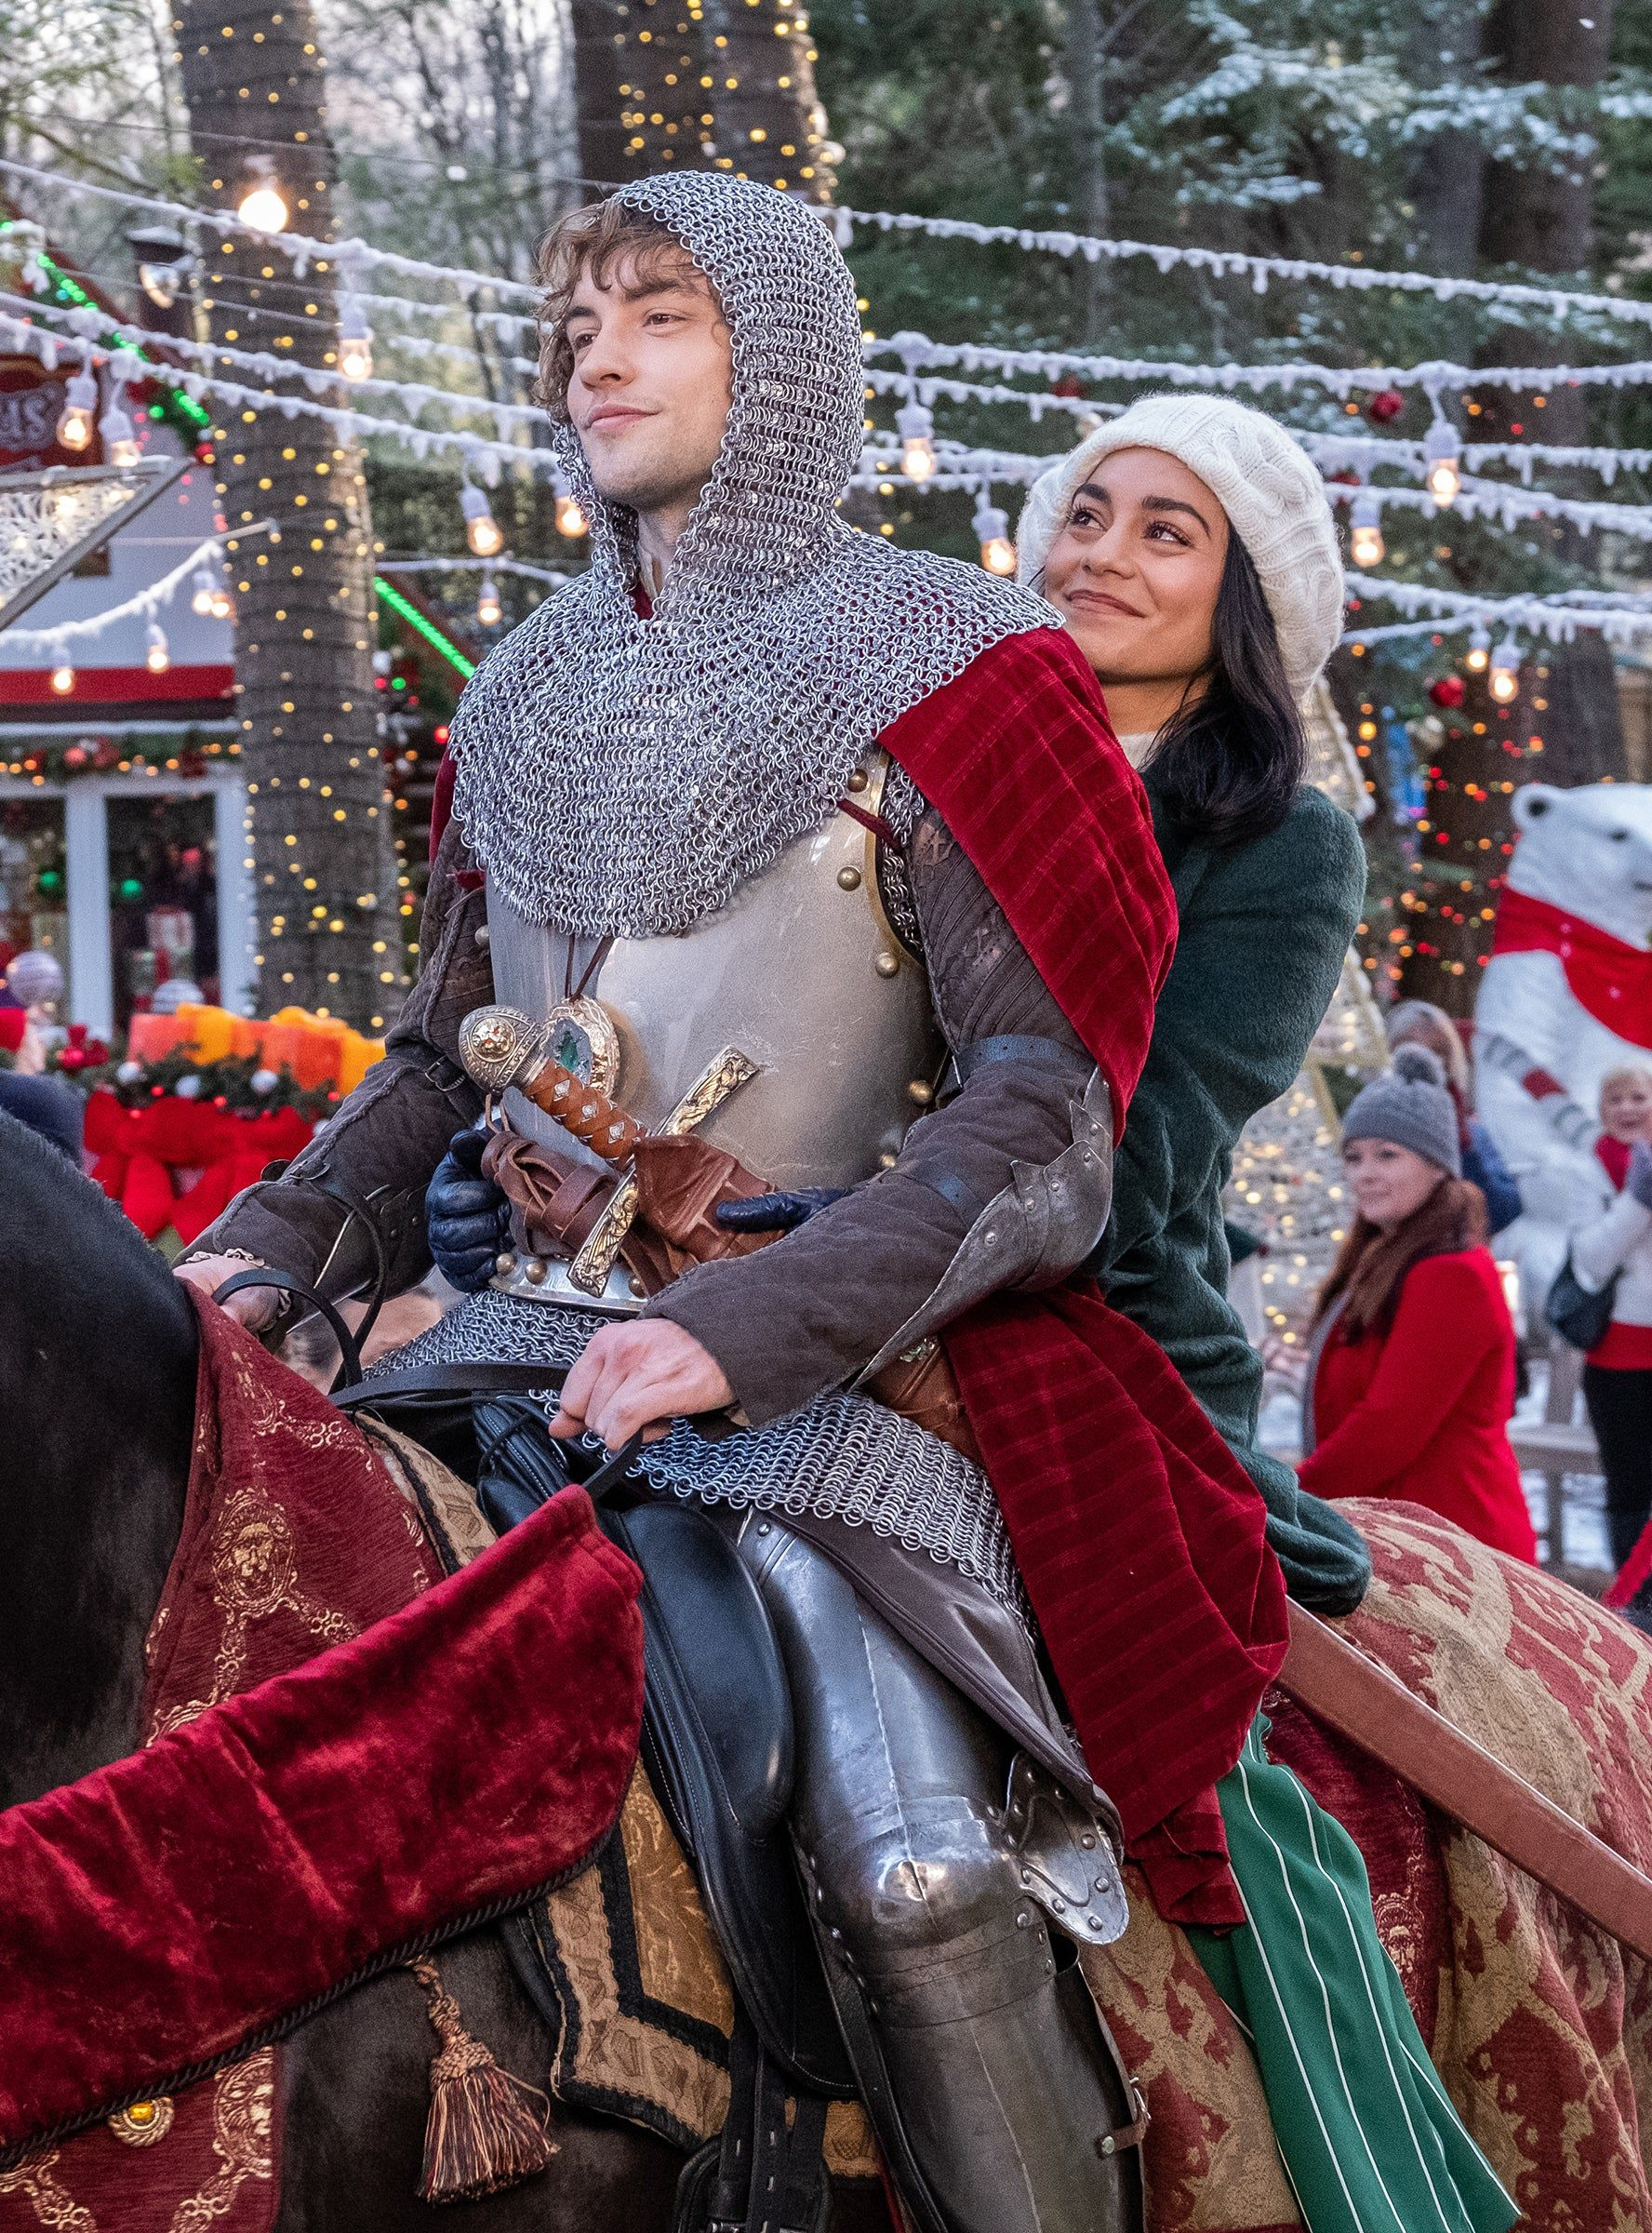 It S Beginning To Look A Lot Like Christmas On Netflix Romantic Christmas Movies The Knight Before Christmas Netflix Christmas Movies